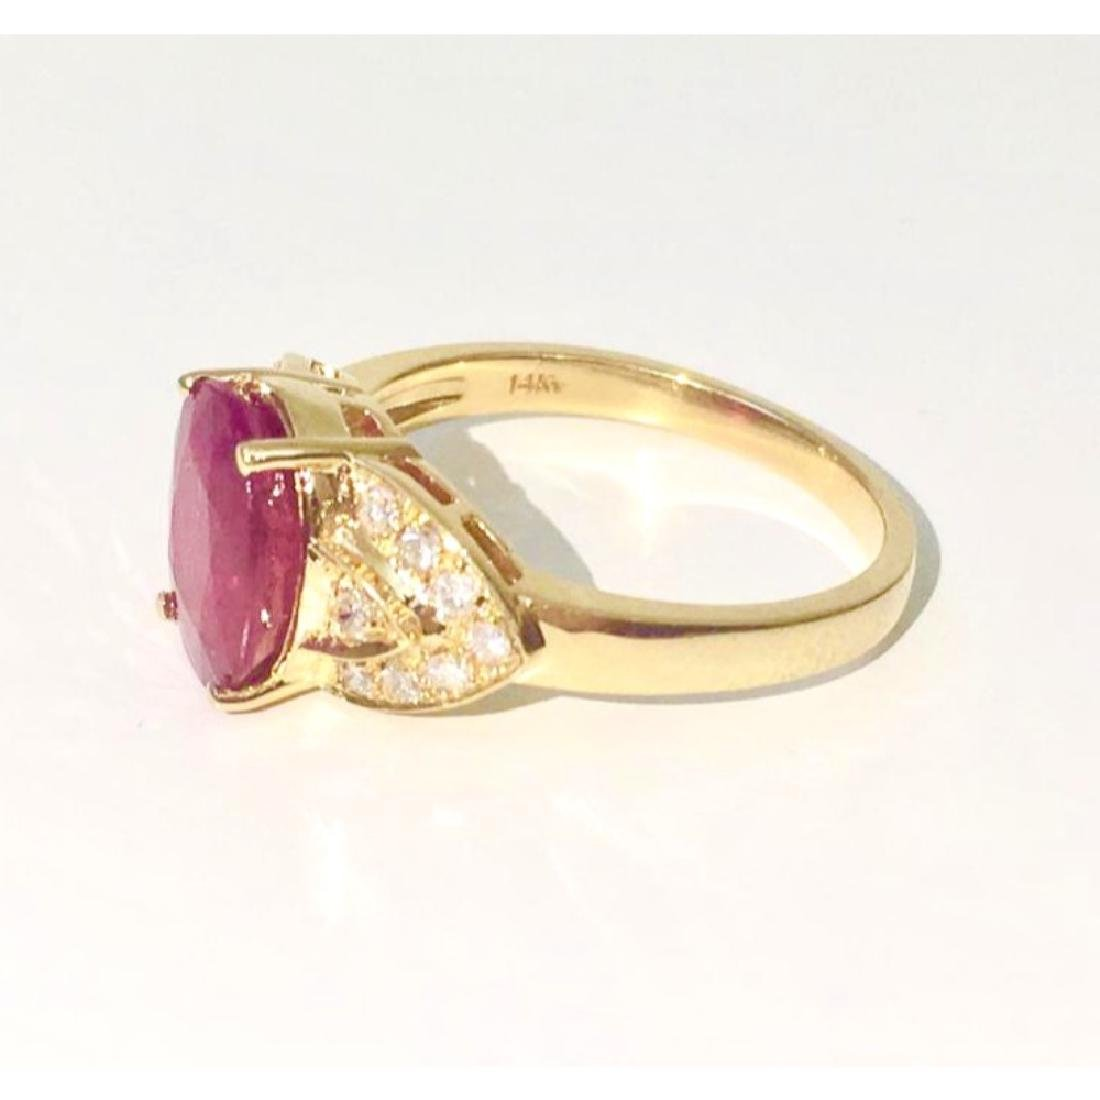 14K Gold, 4.50 CT Ruby and Diamond Ring - 2